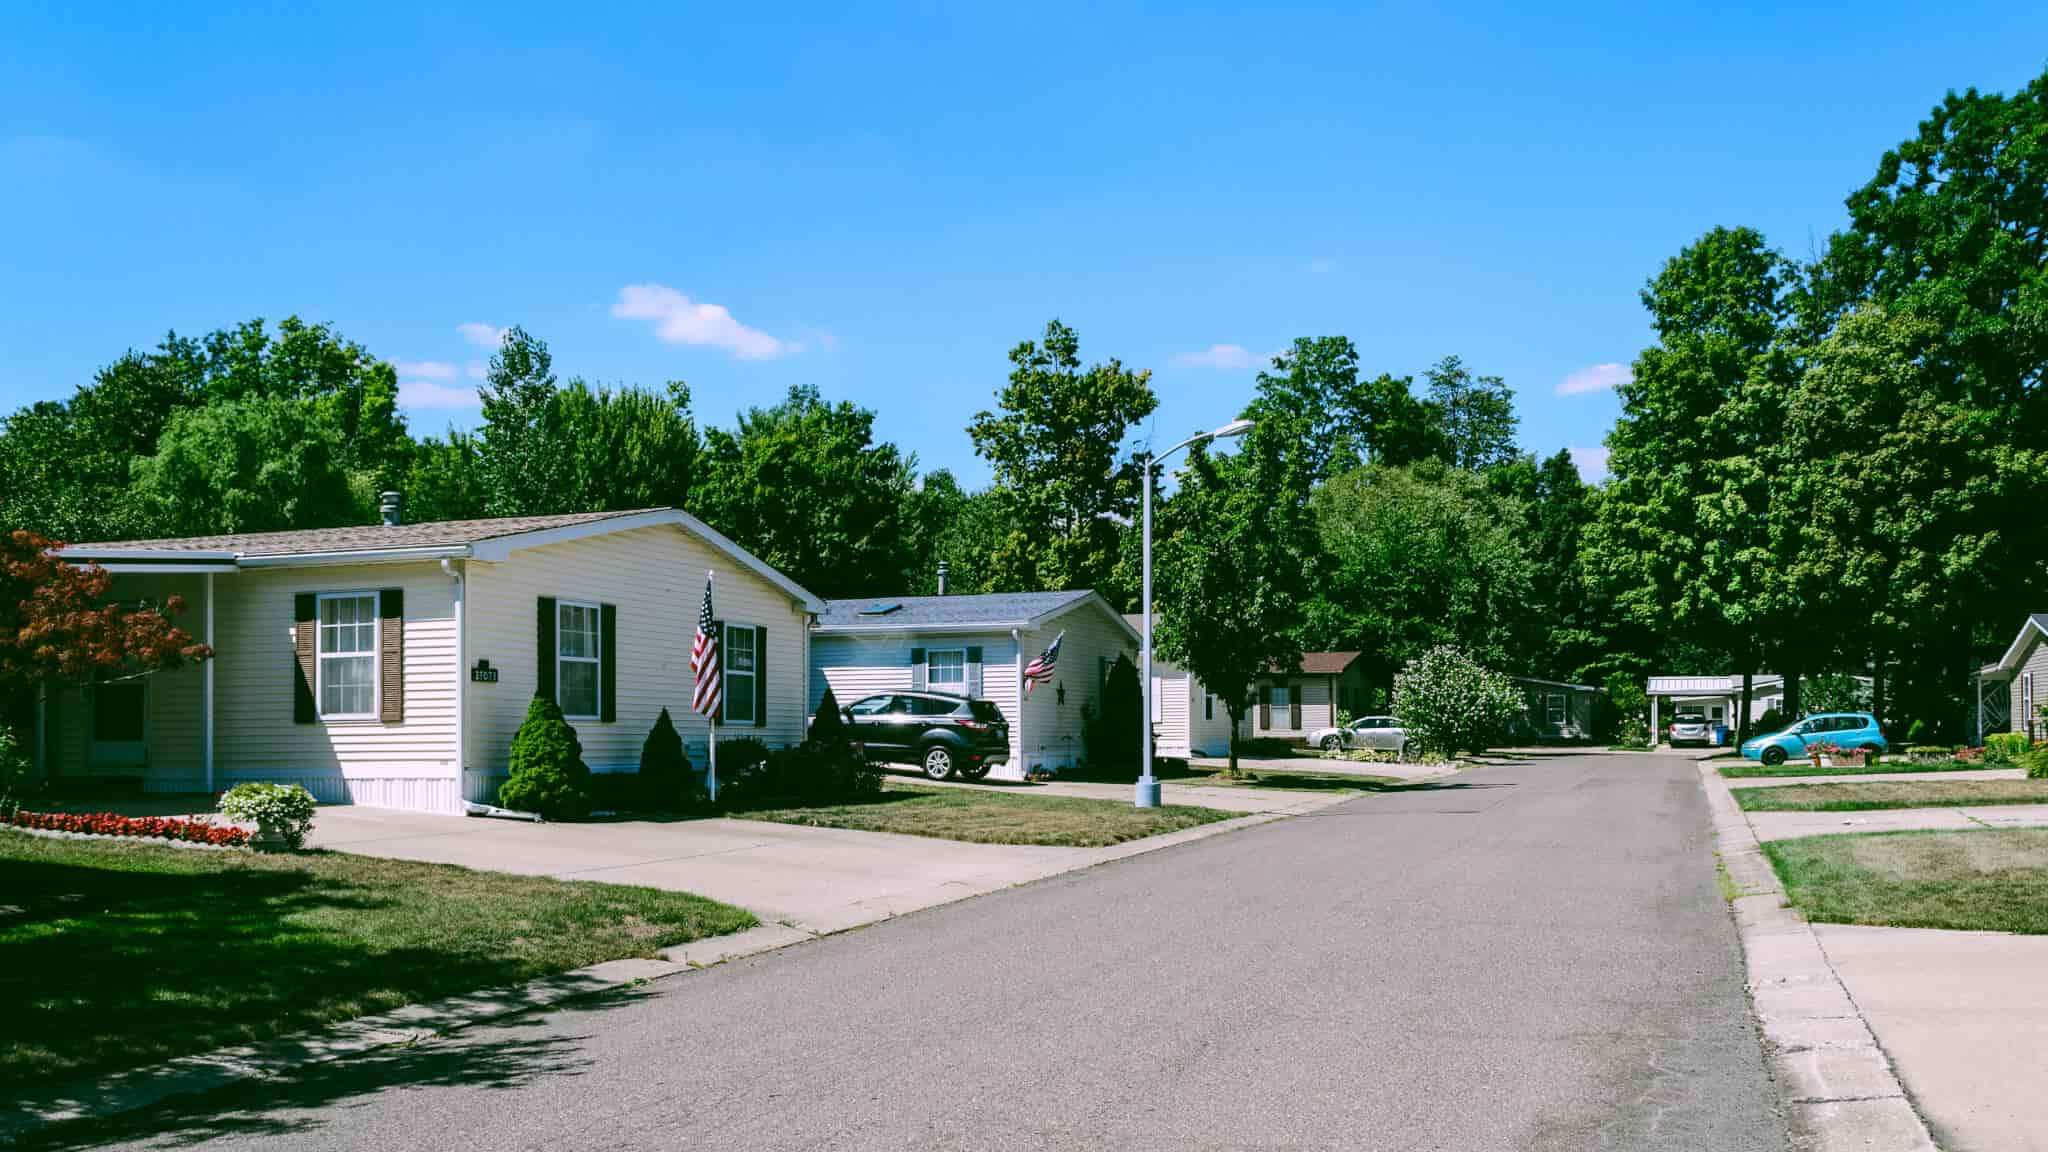 Sell My Mobile Home Fast As-Is For Cash! NOW! Royals Mobile Home Lake City Fl on home orlando fl, home macon ga, home jacksonville fl, home bonita springs fl,